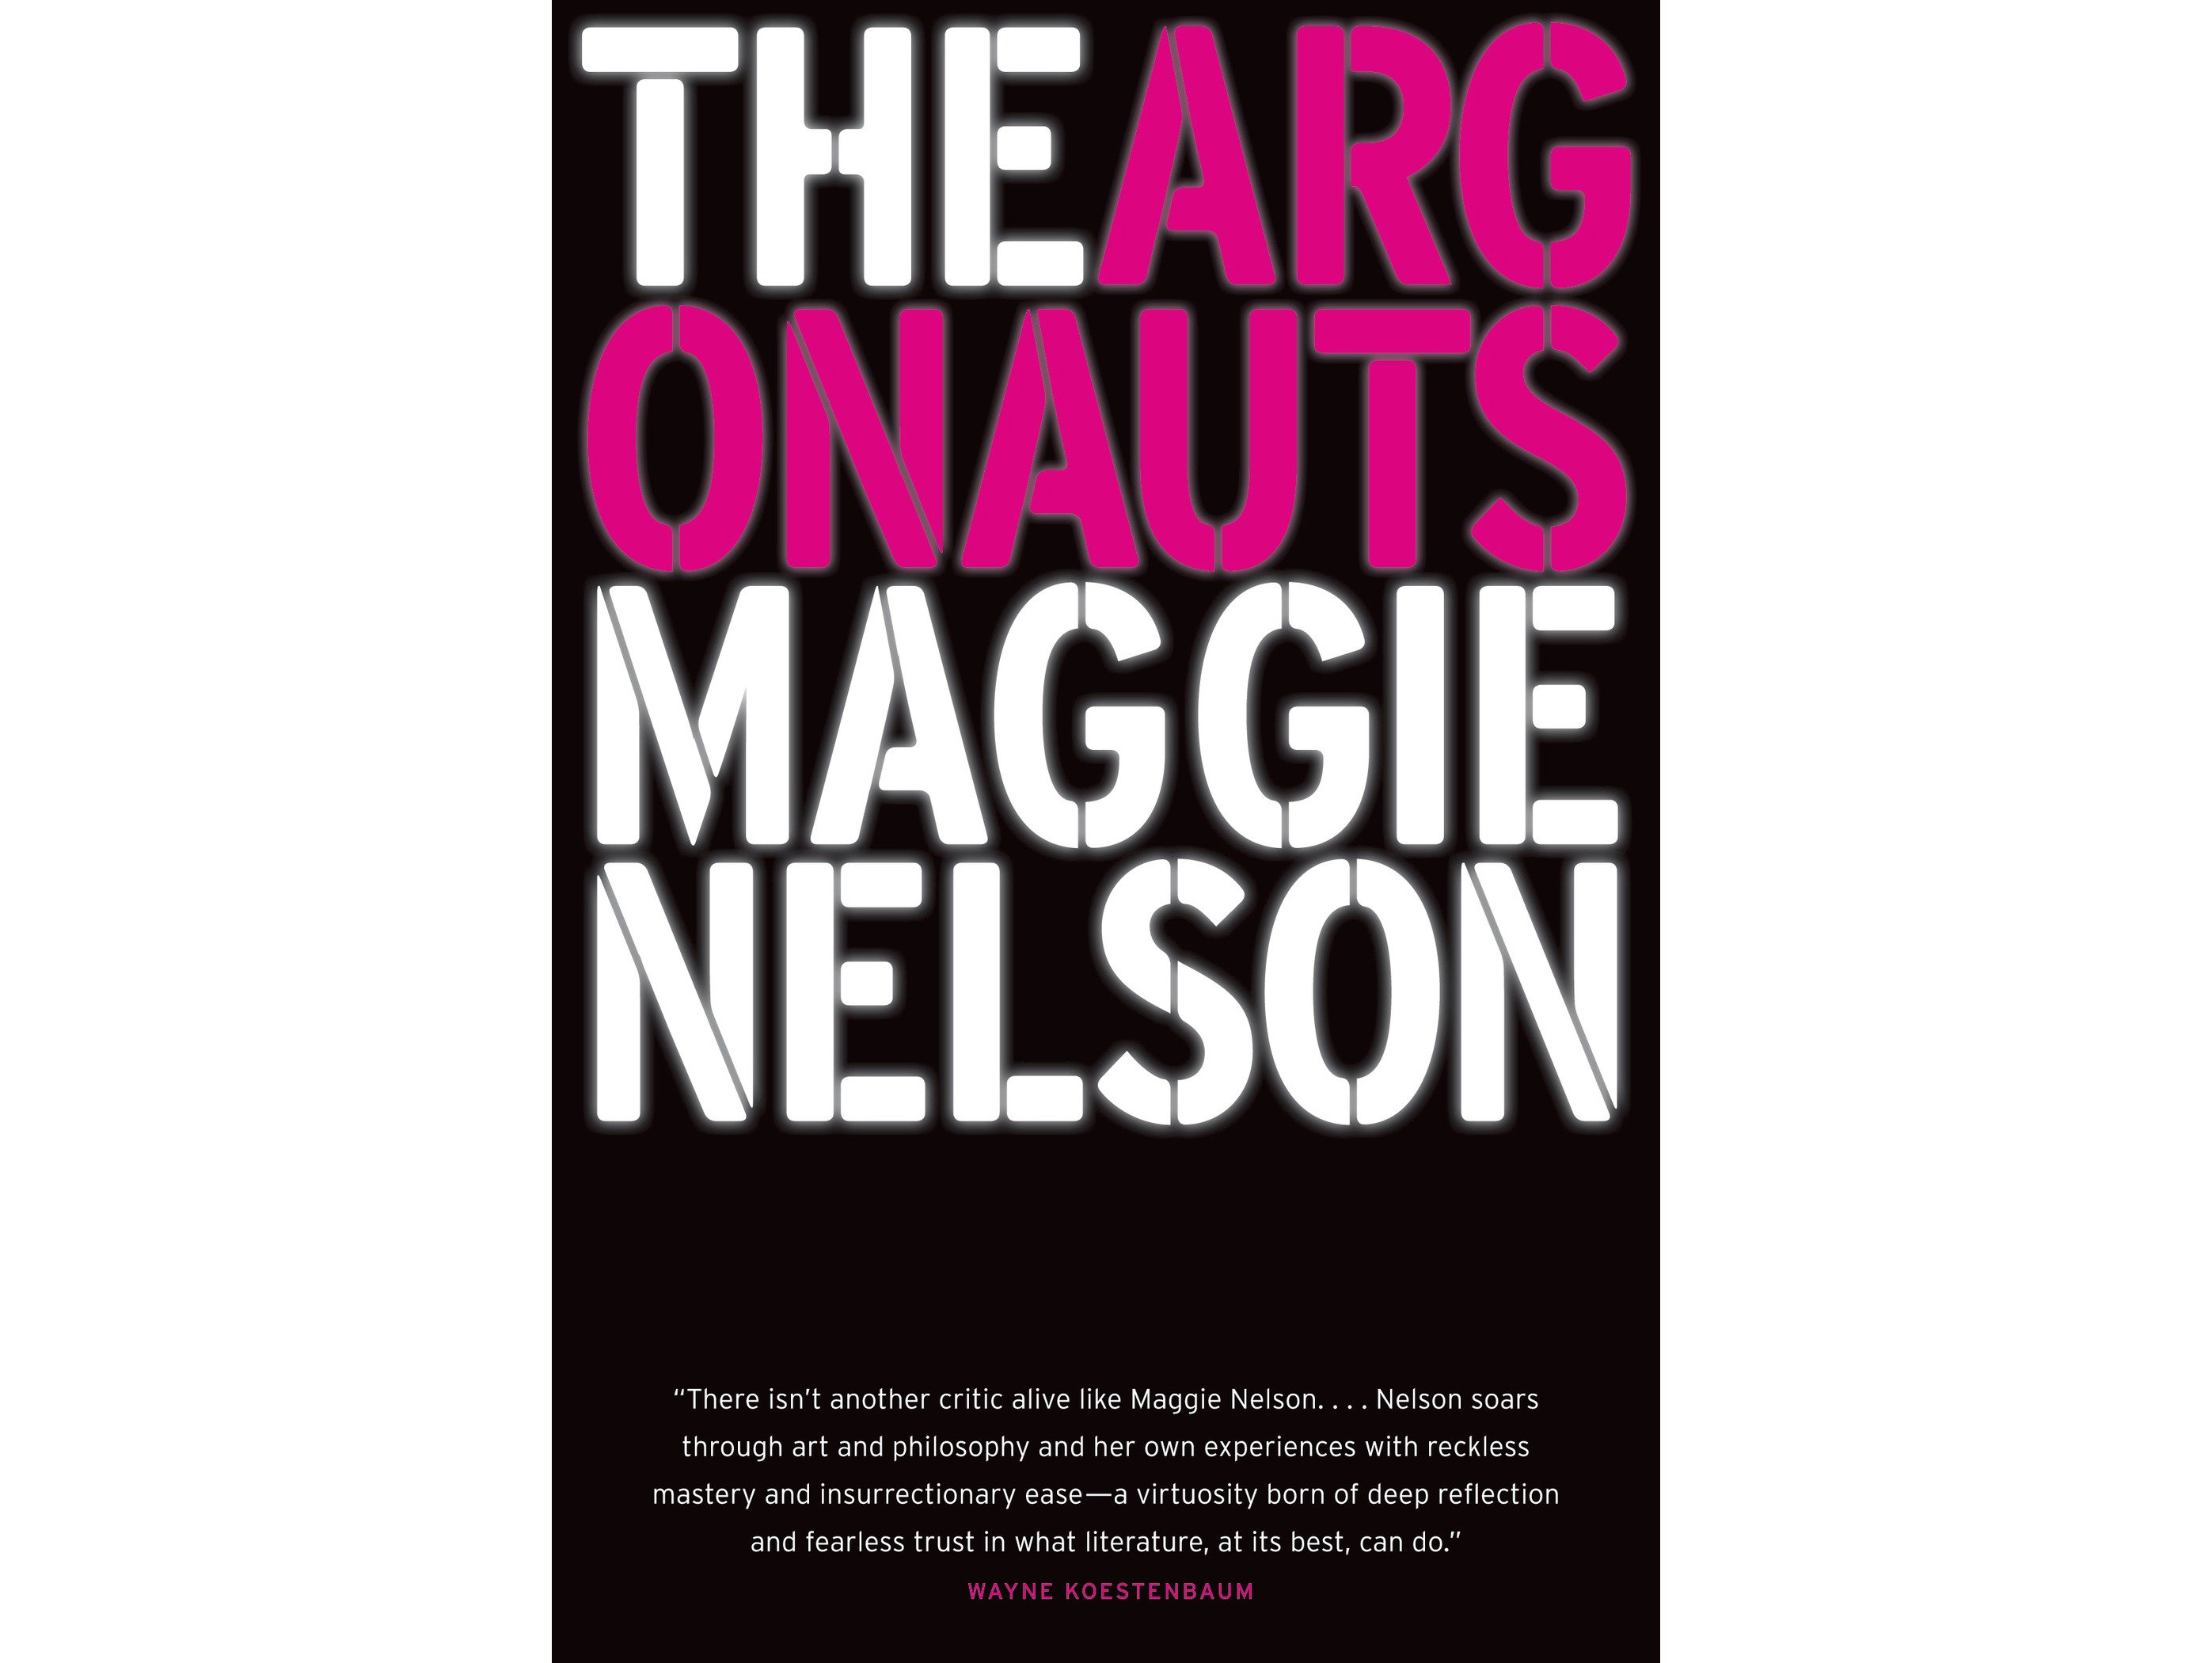 The Argonauts, by Maggie Nelson